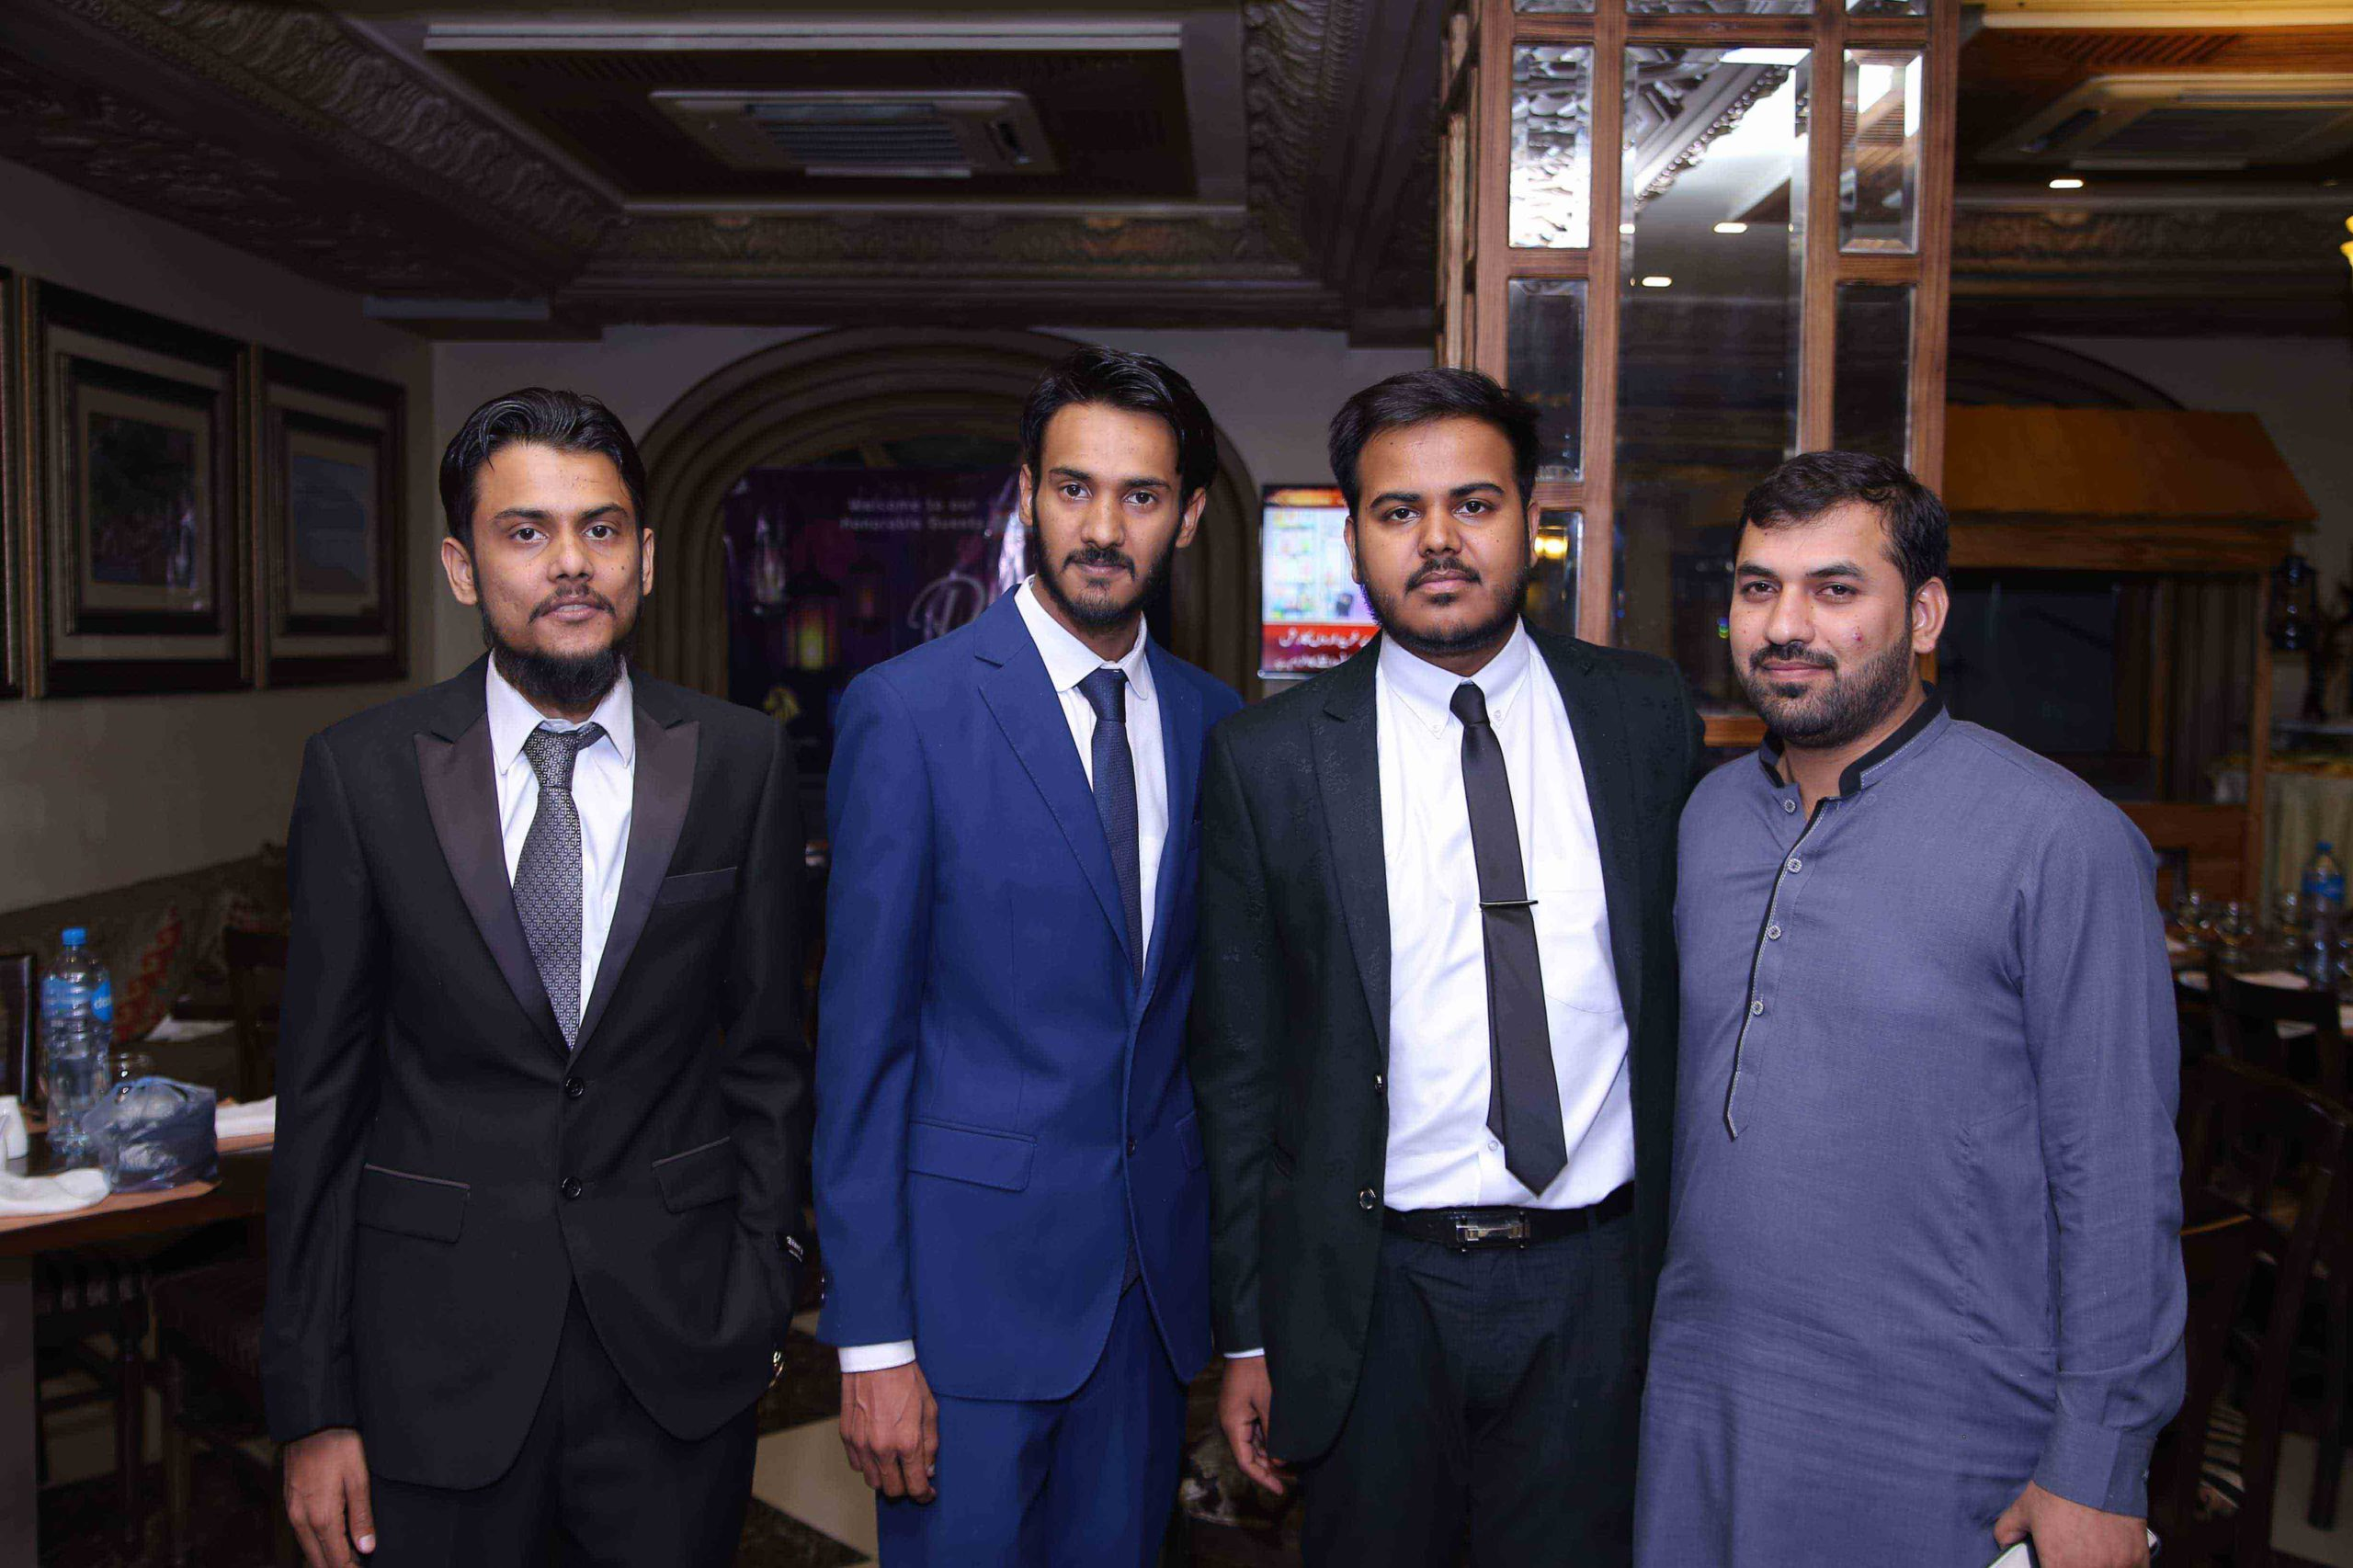 STAFF_ANNUAL_DINNER_&_IFTAR_PARTTY_44